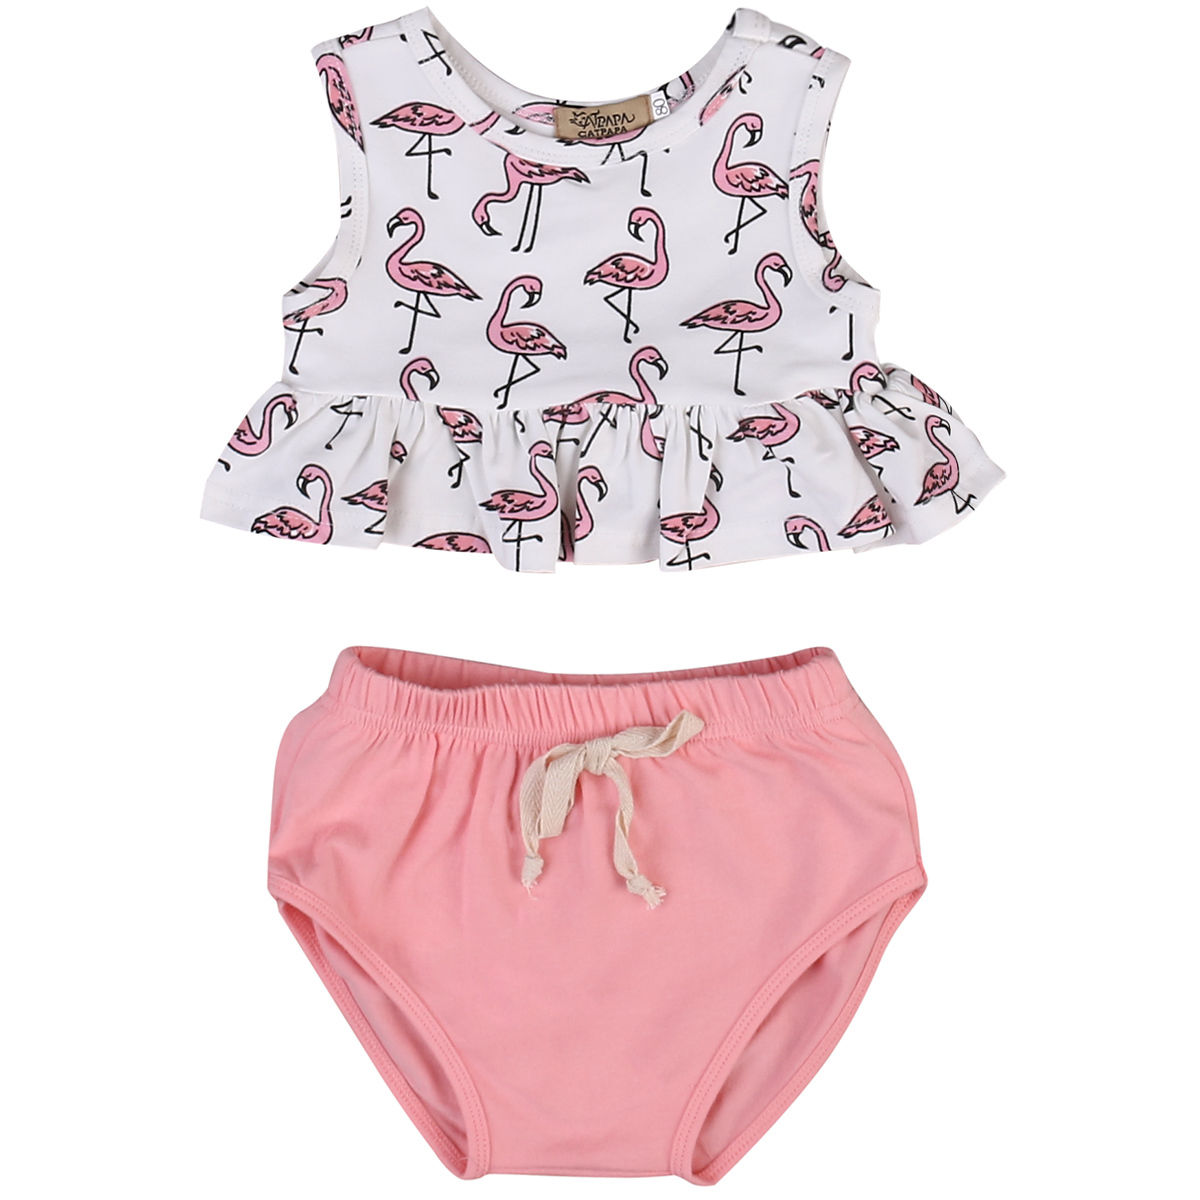 Baby Girl 2pcs Cute Bottom Shorts Outfits Set Clothing 2Pcs Newborn Toddler Baby Girls Clothes Set Sleeveless Tops 3pcs set newborn baby girl clothes 2017 summer floral outfits off should tops bottom headband children ruffles kid clothing set